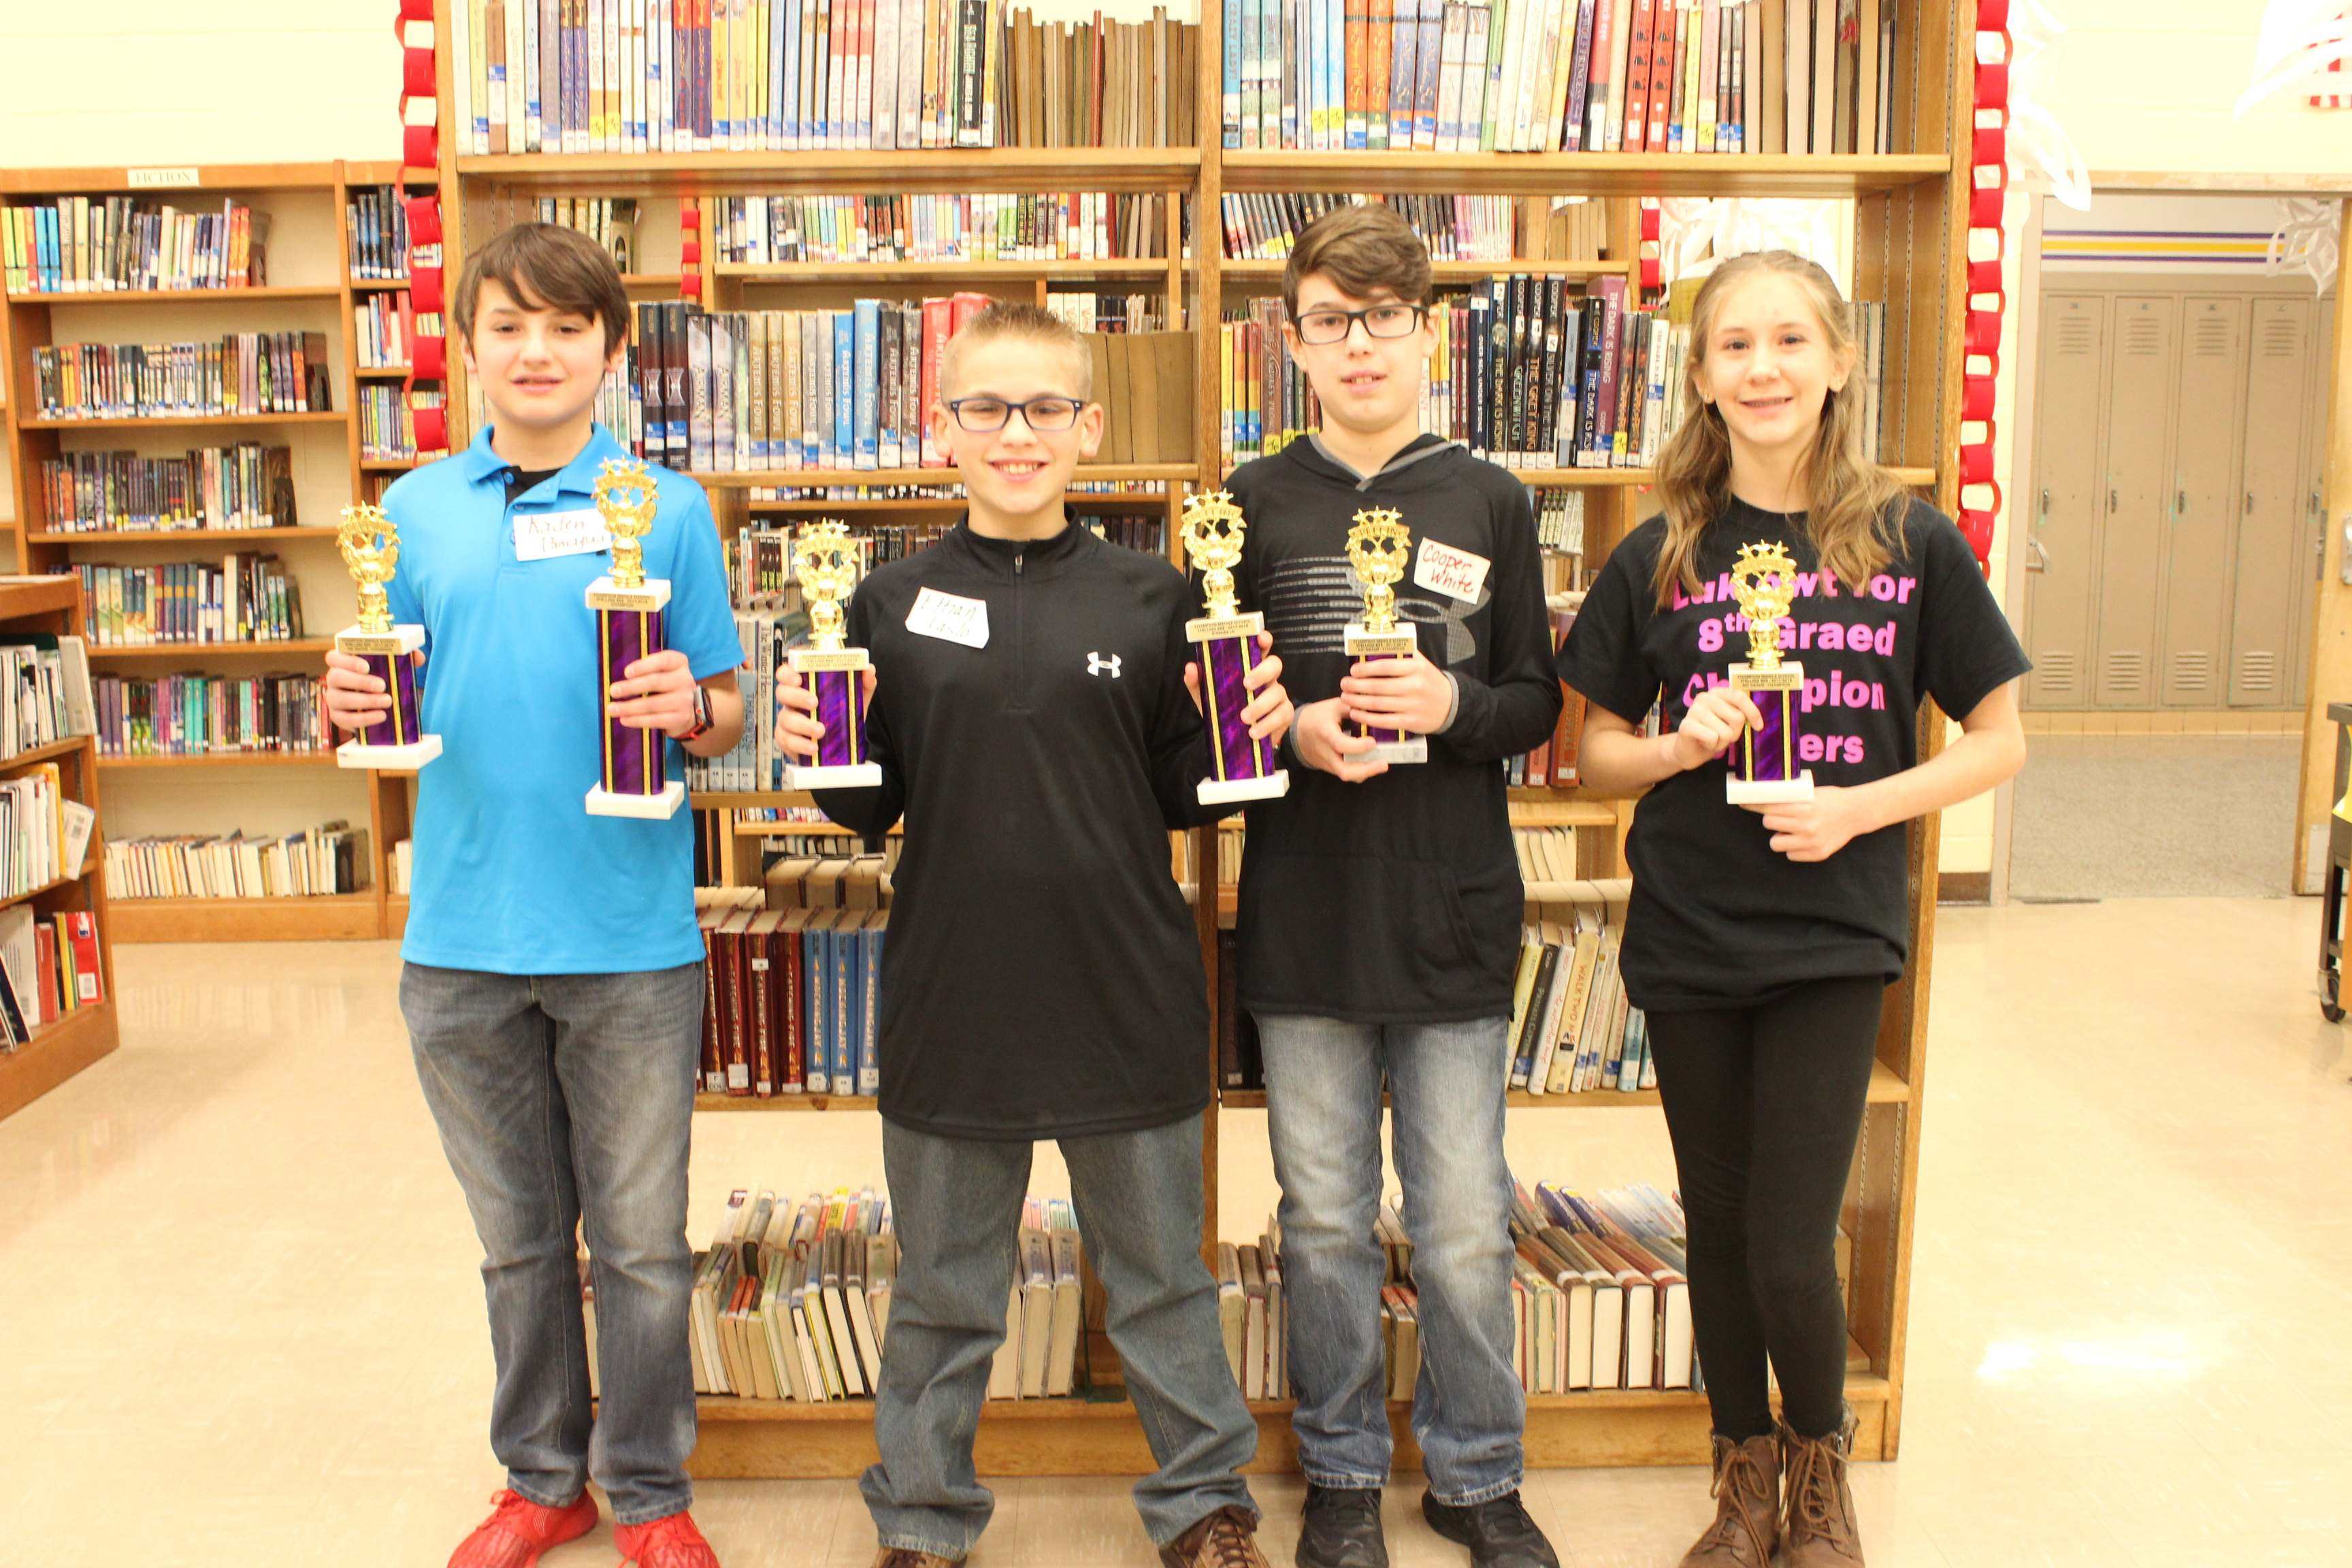 CMS Spelling Bee Champion, Runner-up and Grade Level winners